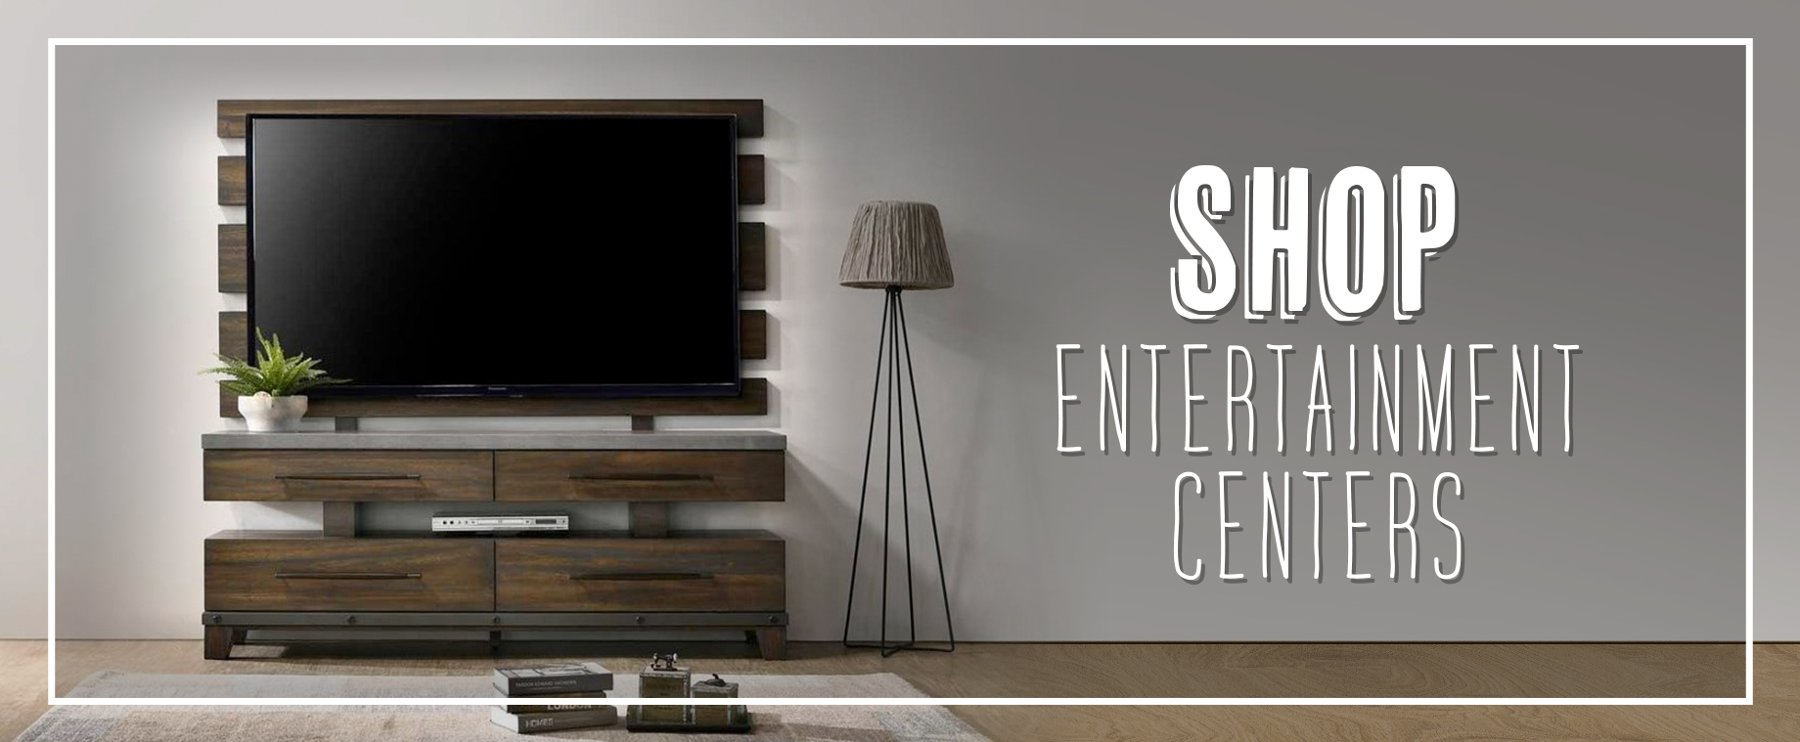 hight resolution of shop entertainment centers and tv stands for your home